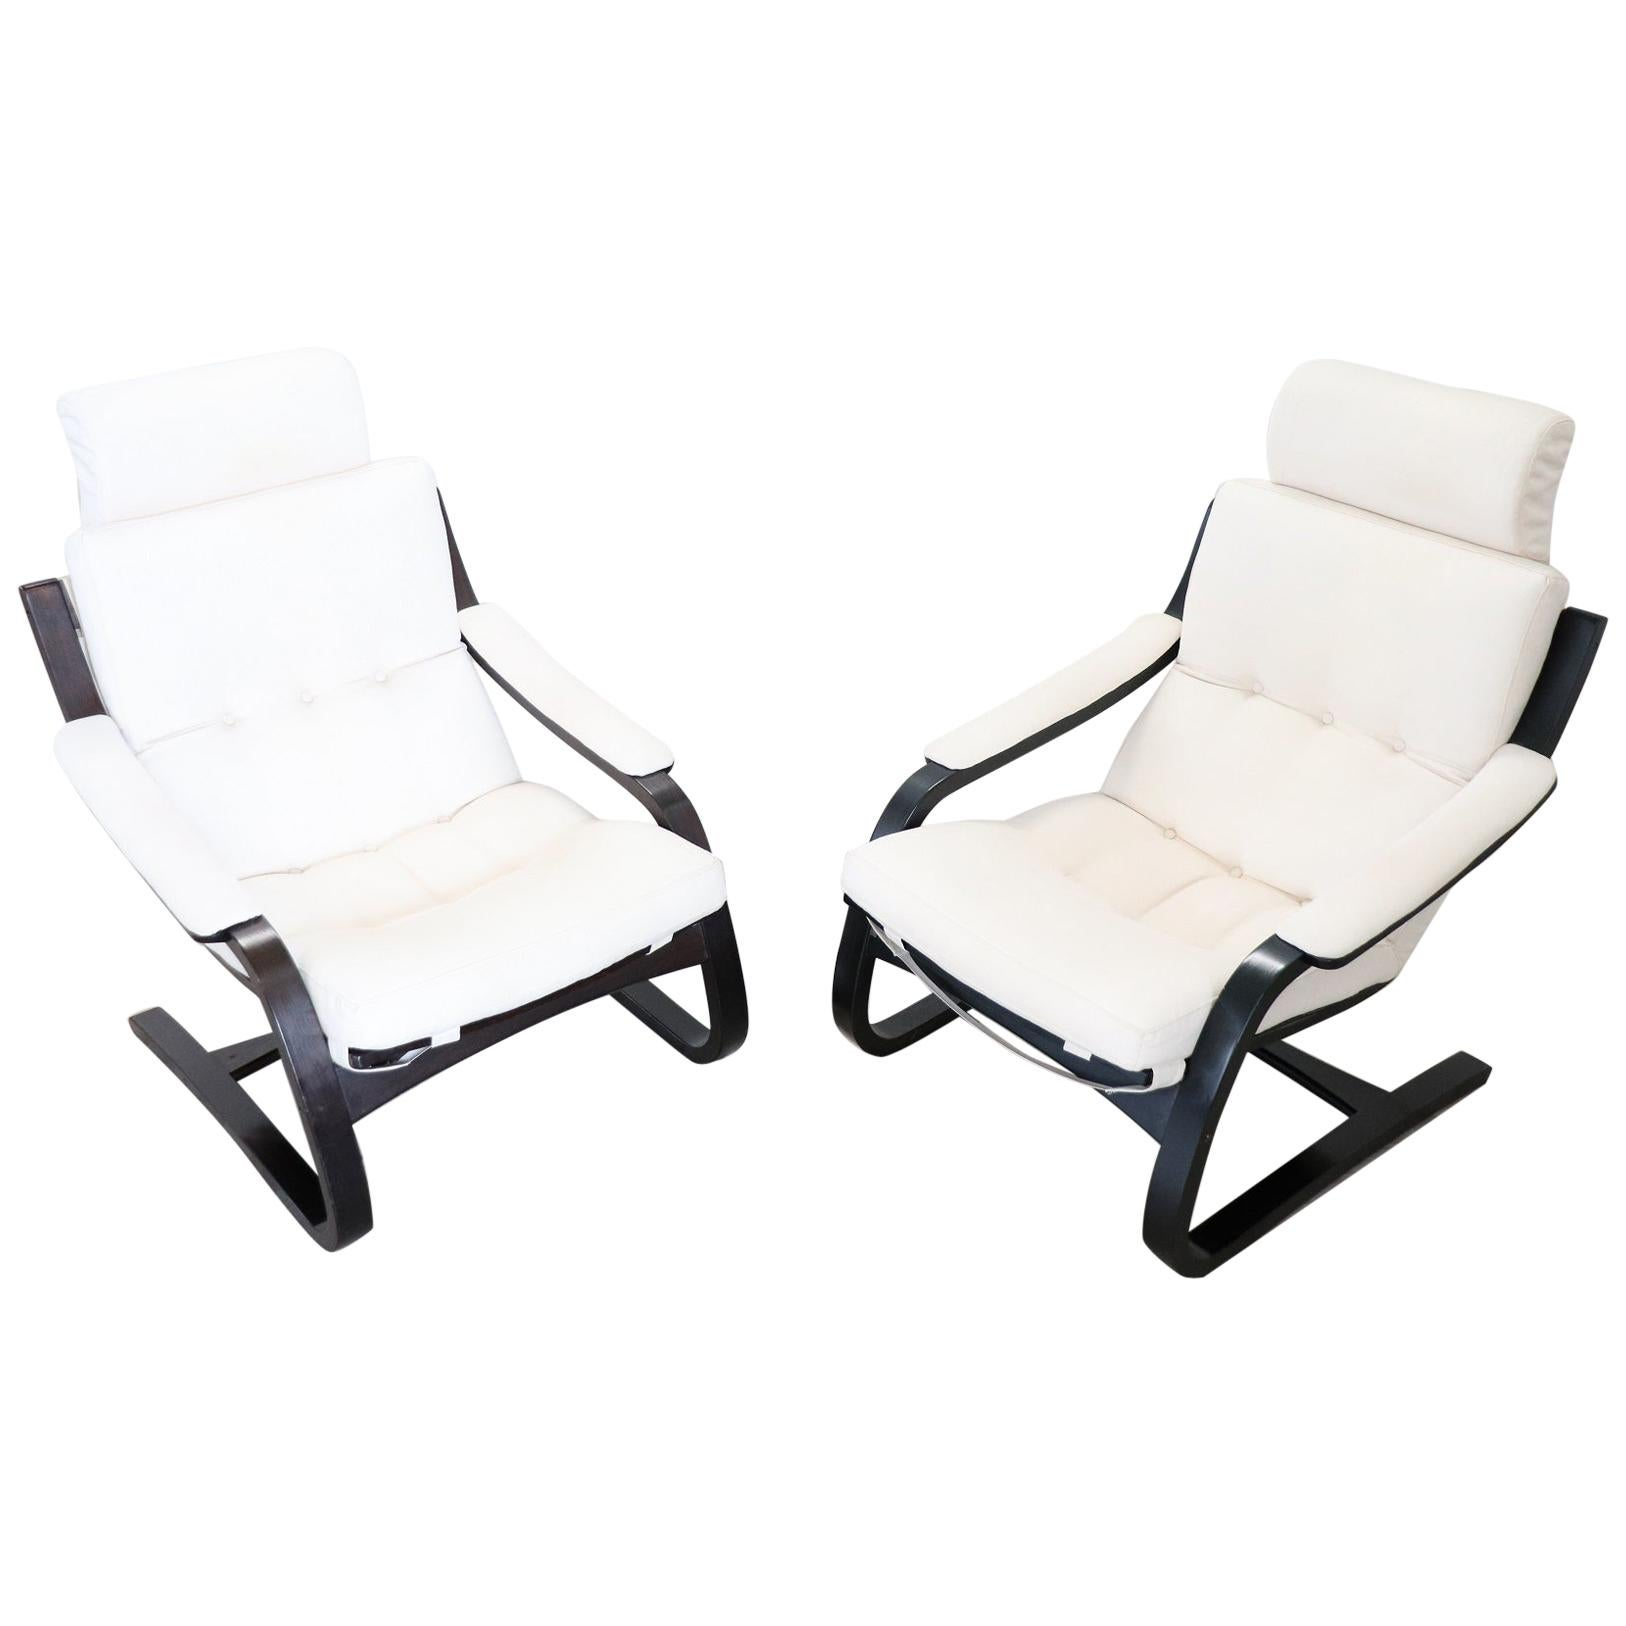 Swedish Pair of Kroken Lounge Chairs by Ake Fribytter for Nelo Mobel, 1970s